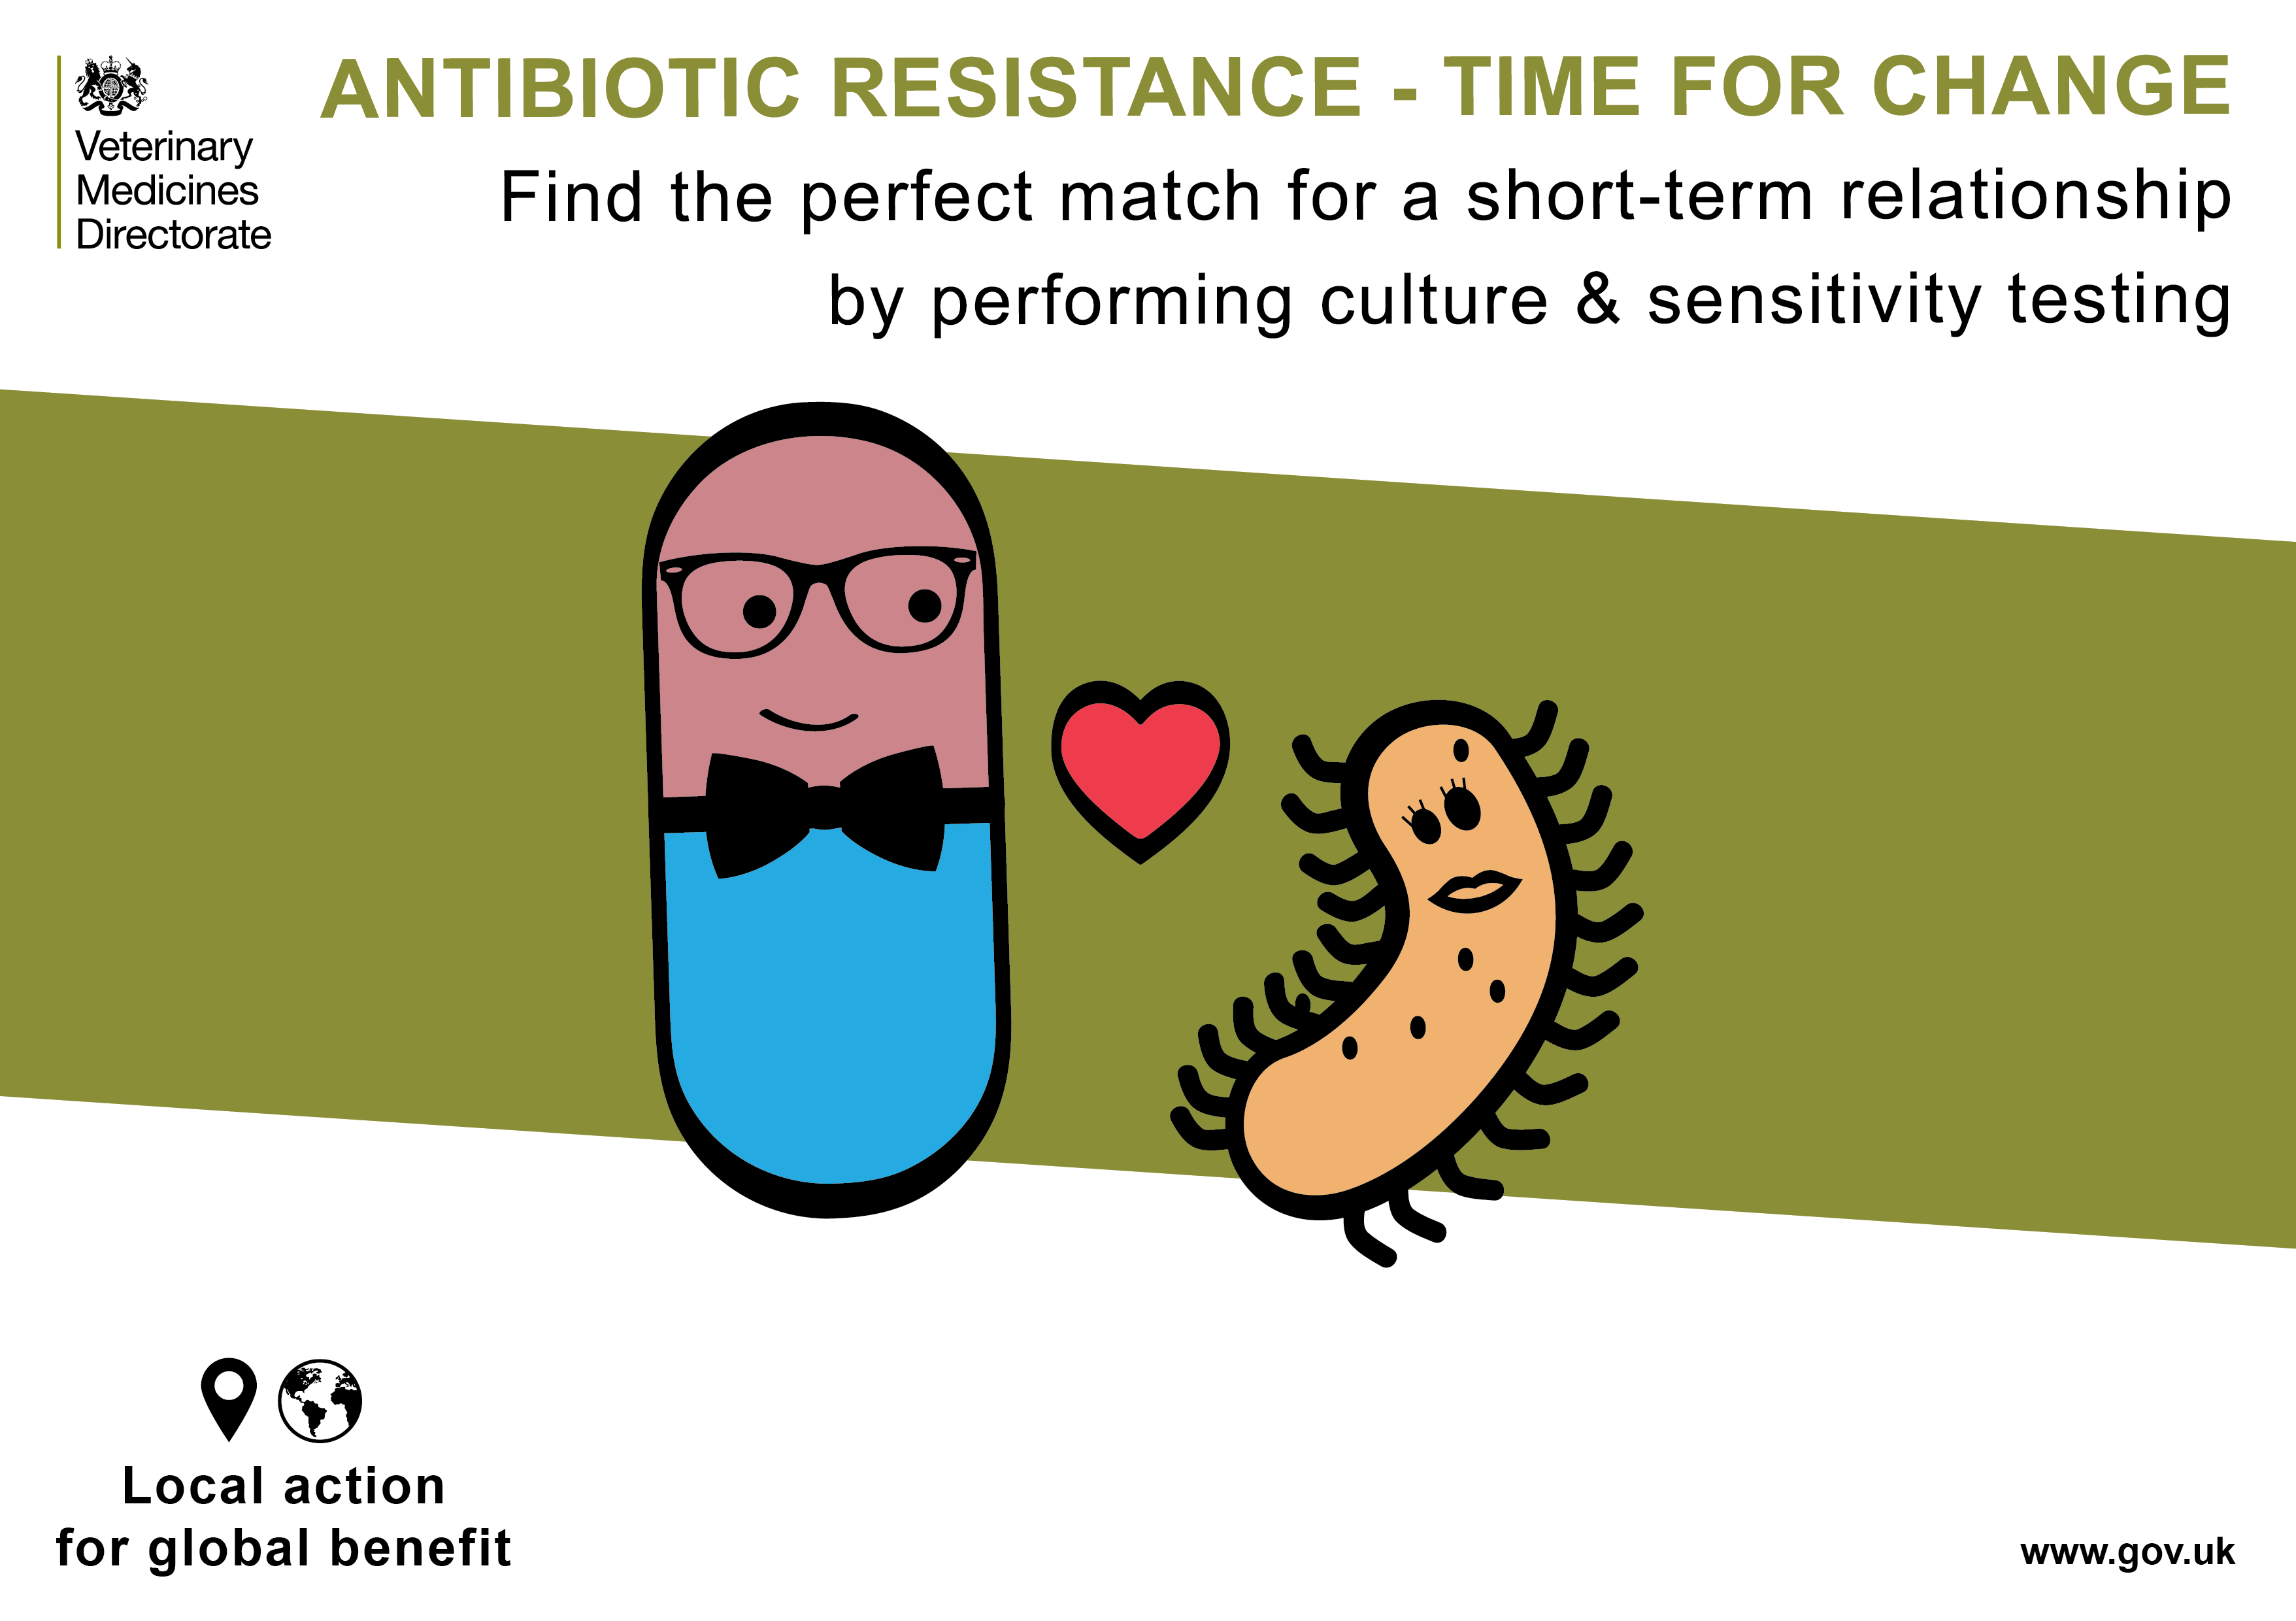 antibiotic resistance essay 2 Free antibiotic resistance papers, essays, and research papers  groups for  bacteria: 1) gram-positive, 2) gram-negative, 3) anaerobes, and 4) atypical.